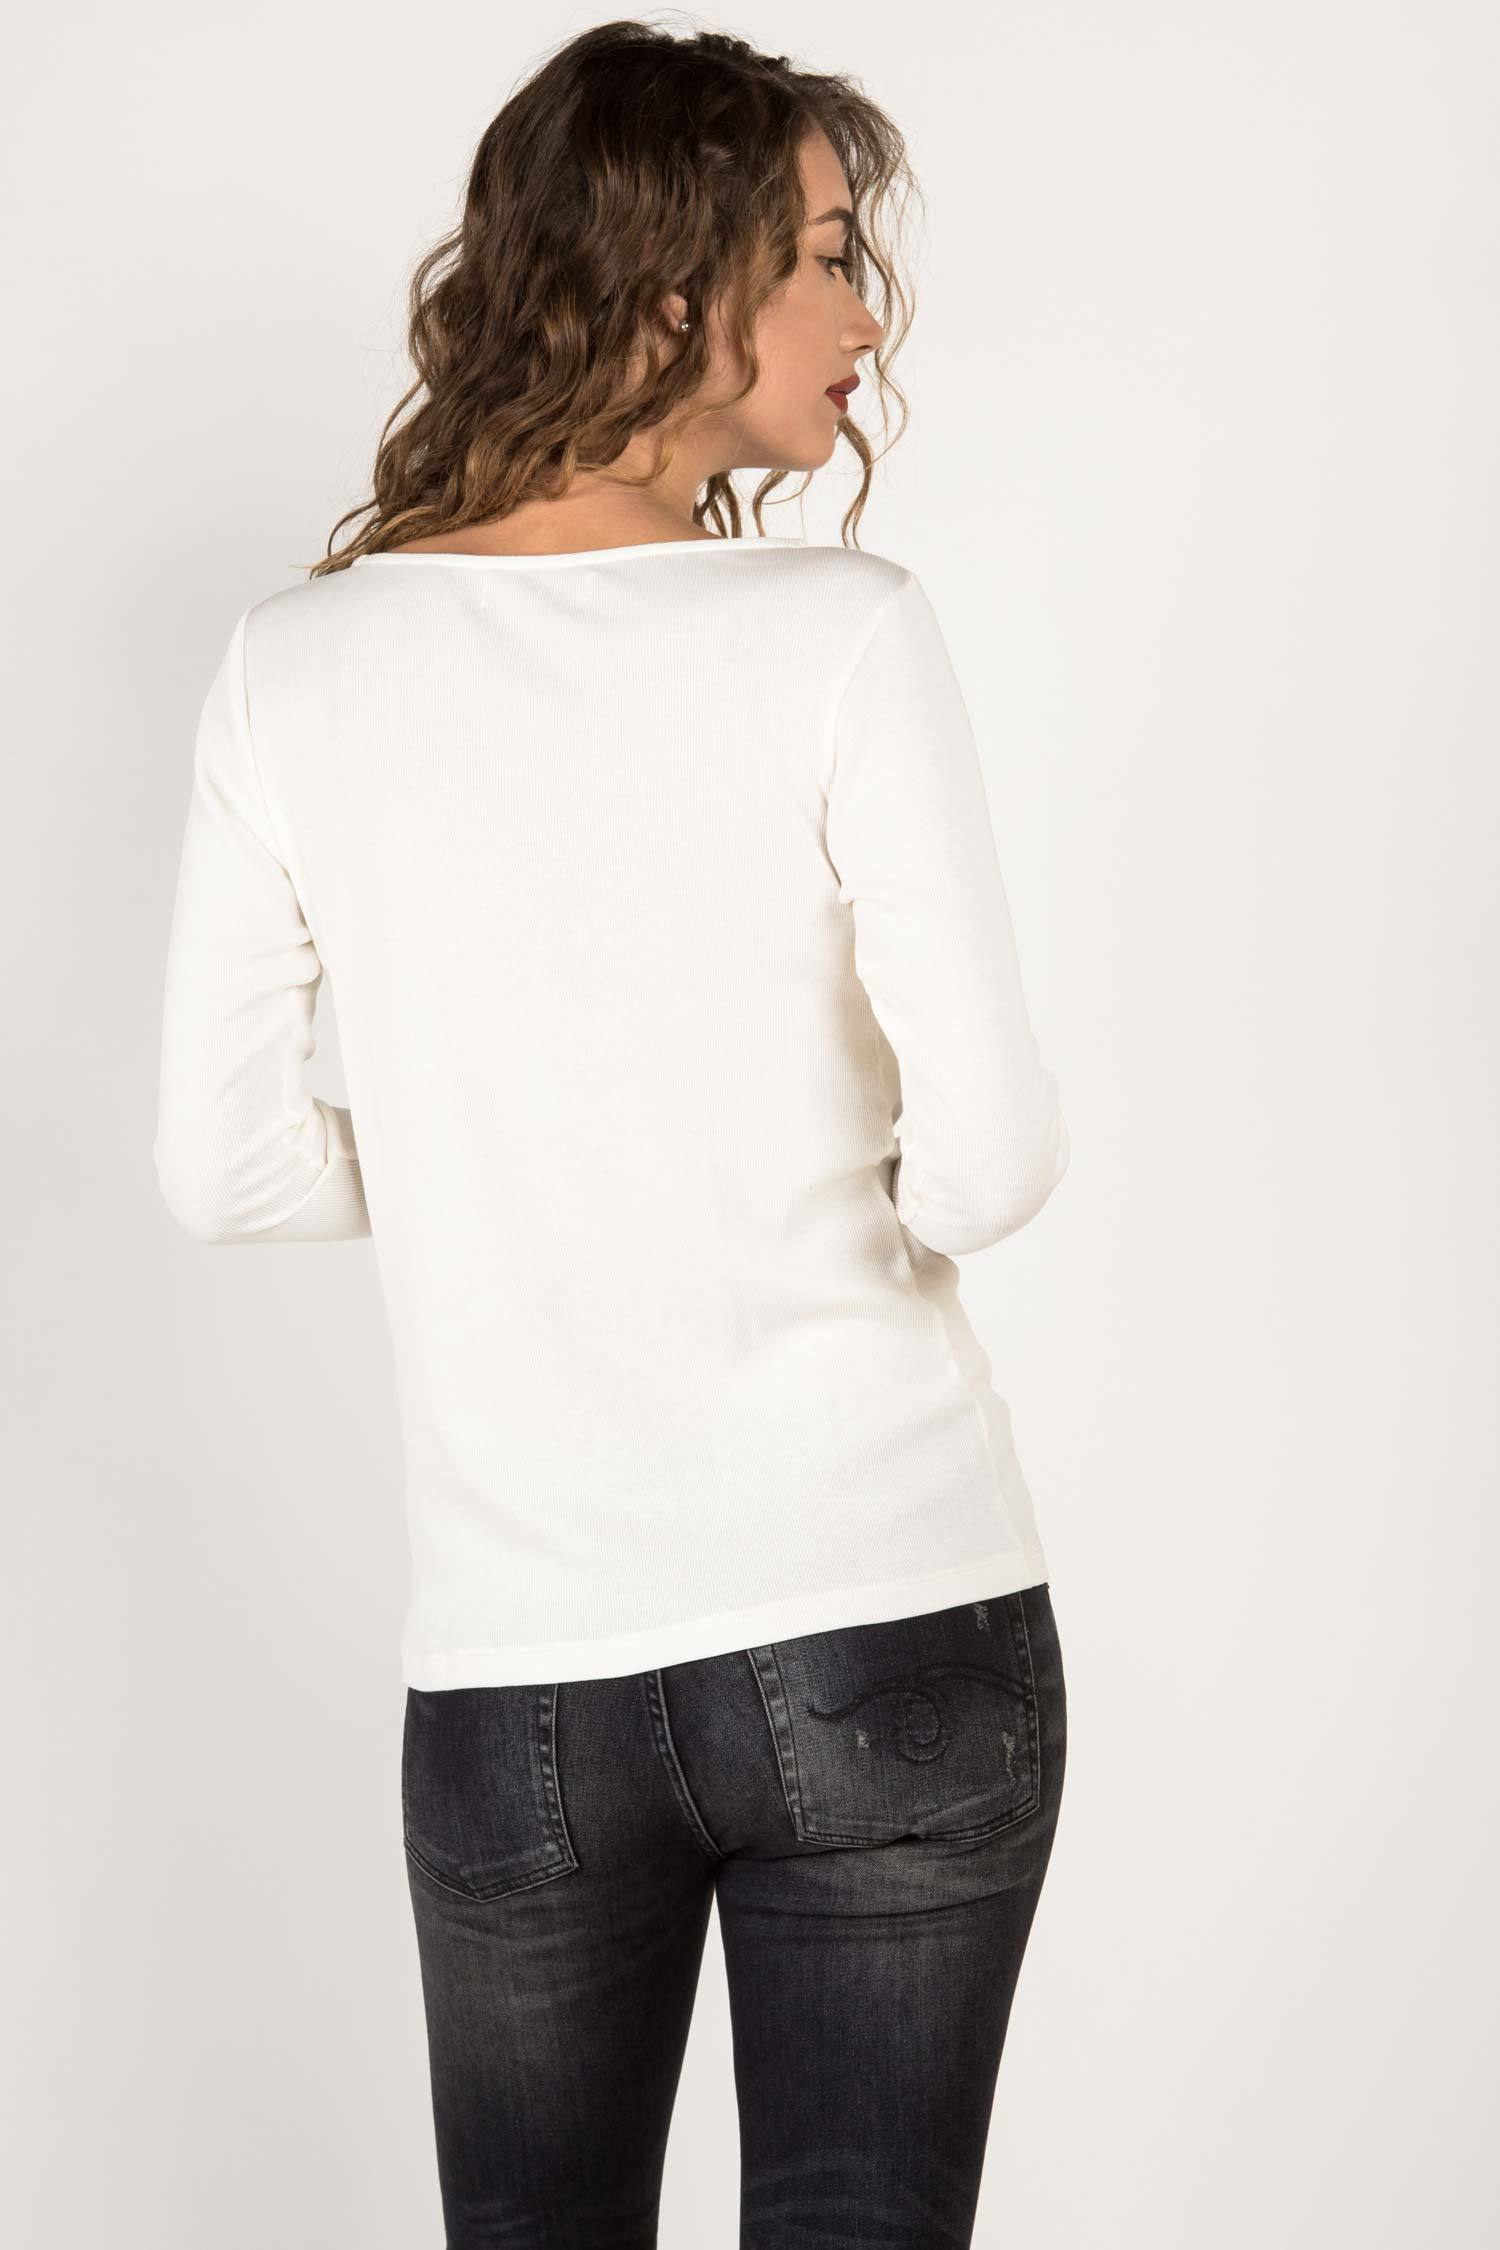 Womens Organic Cotton Top | White Long Sleeve Boatneck Tee | Indigenous